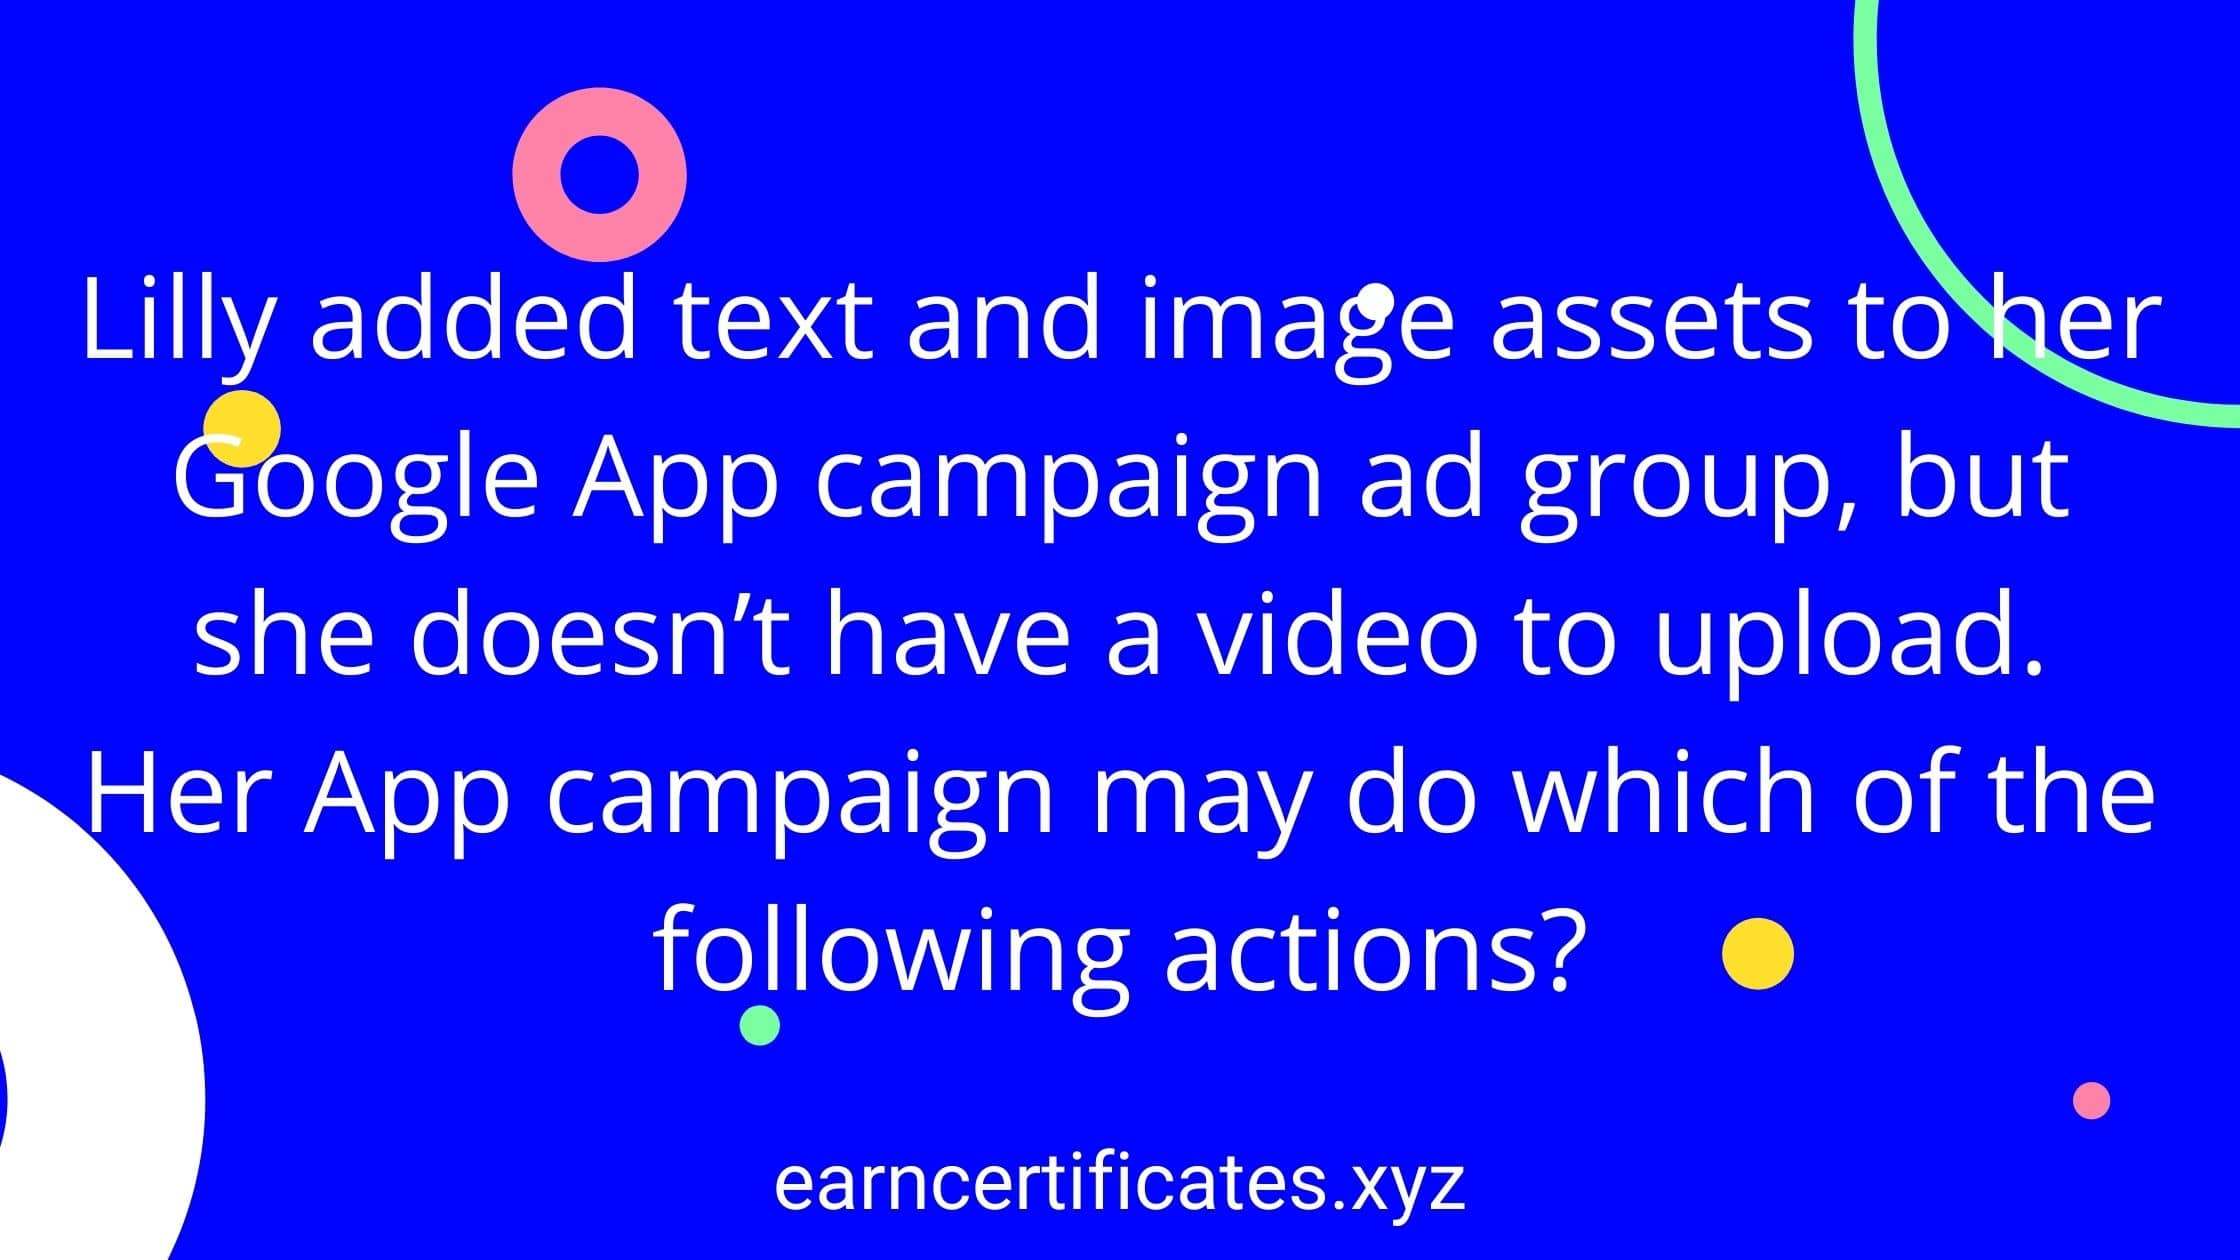 Lilly added text and image assets to her Google App campaign ad group, but she doesn't have a video to upload. Her App campaign may do which of the following actions?